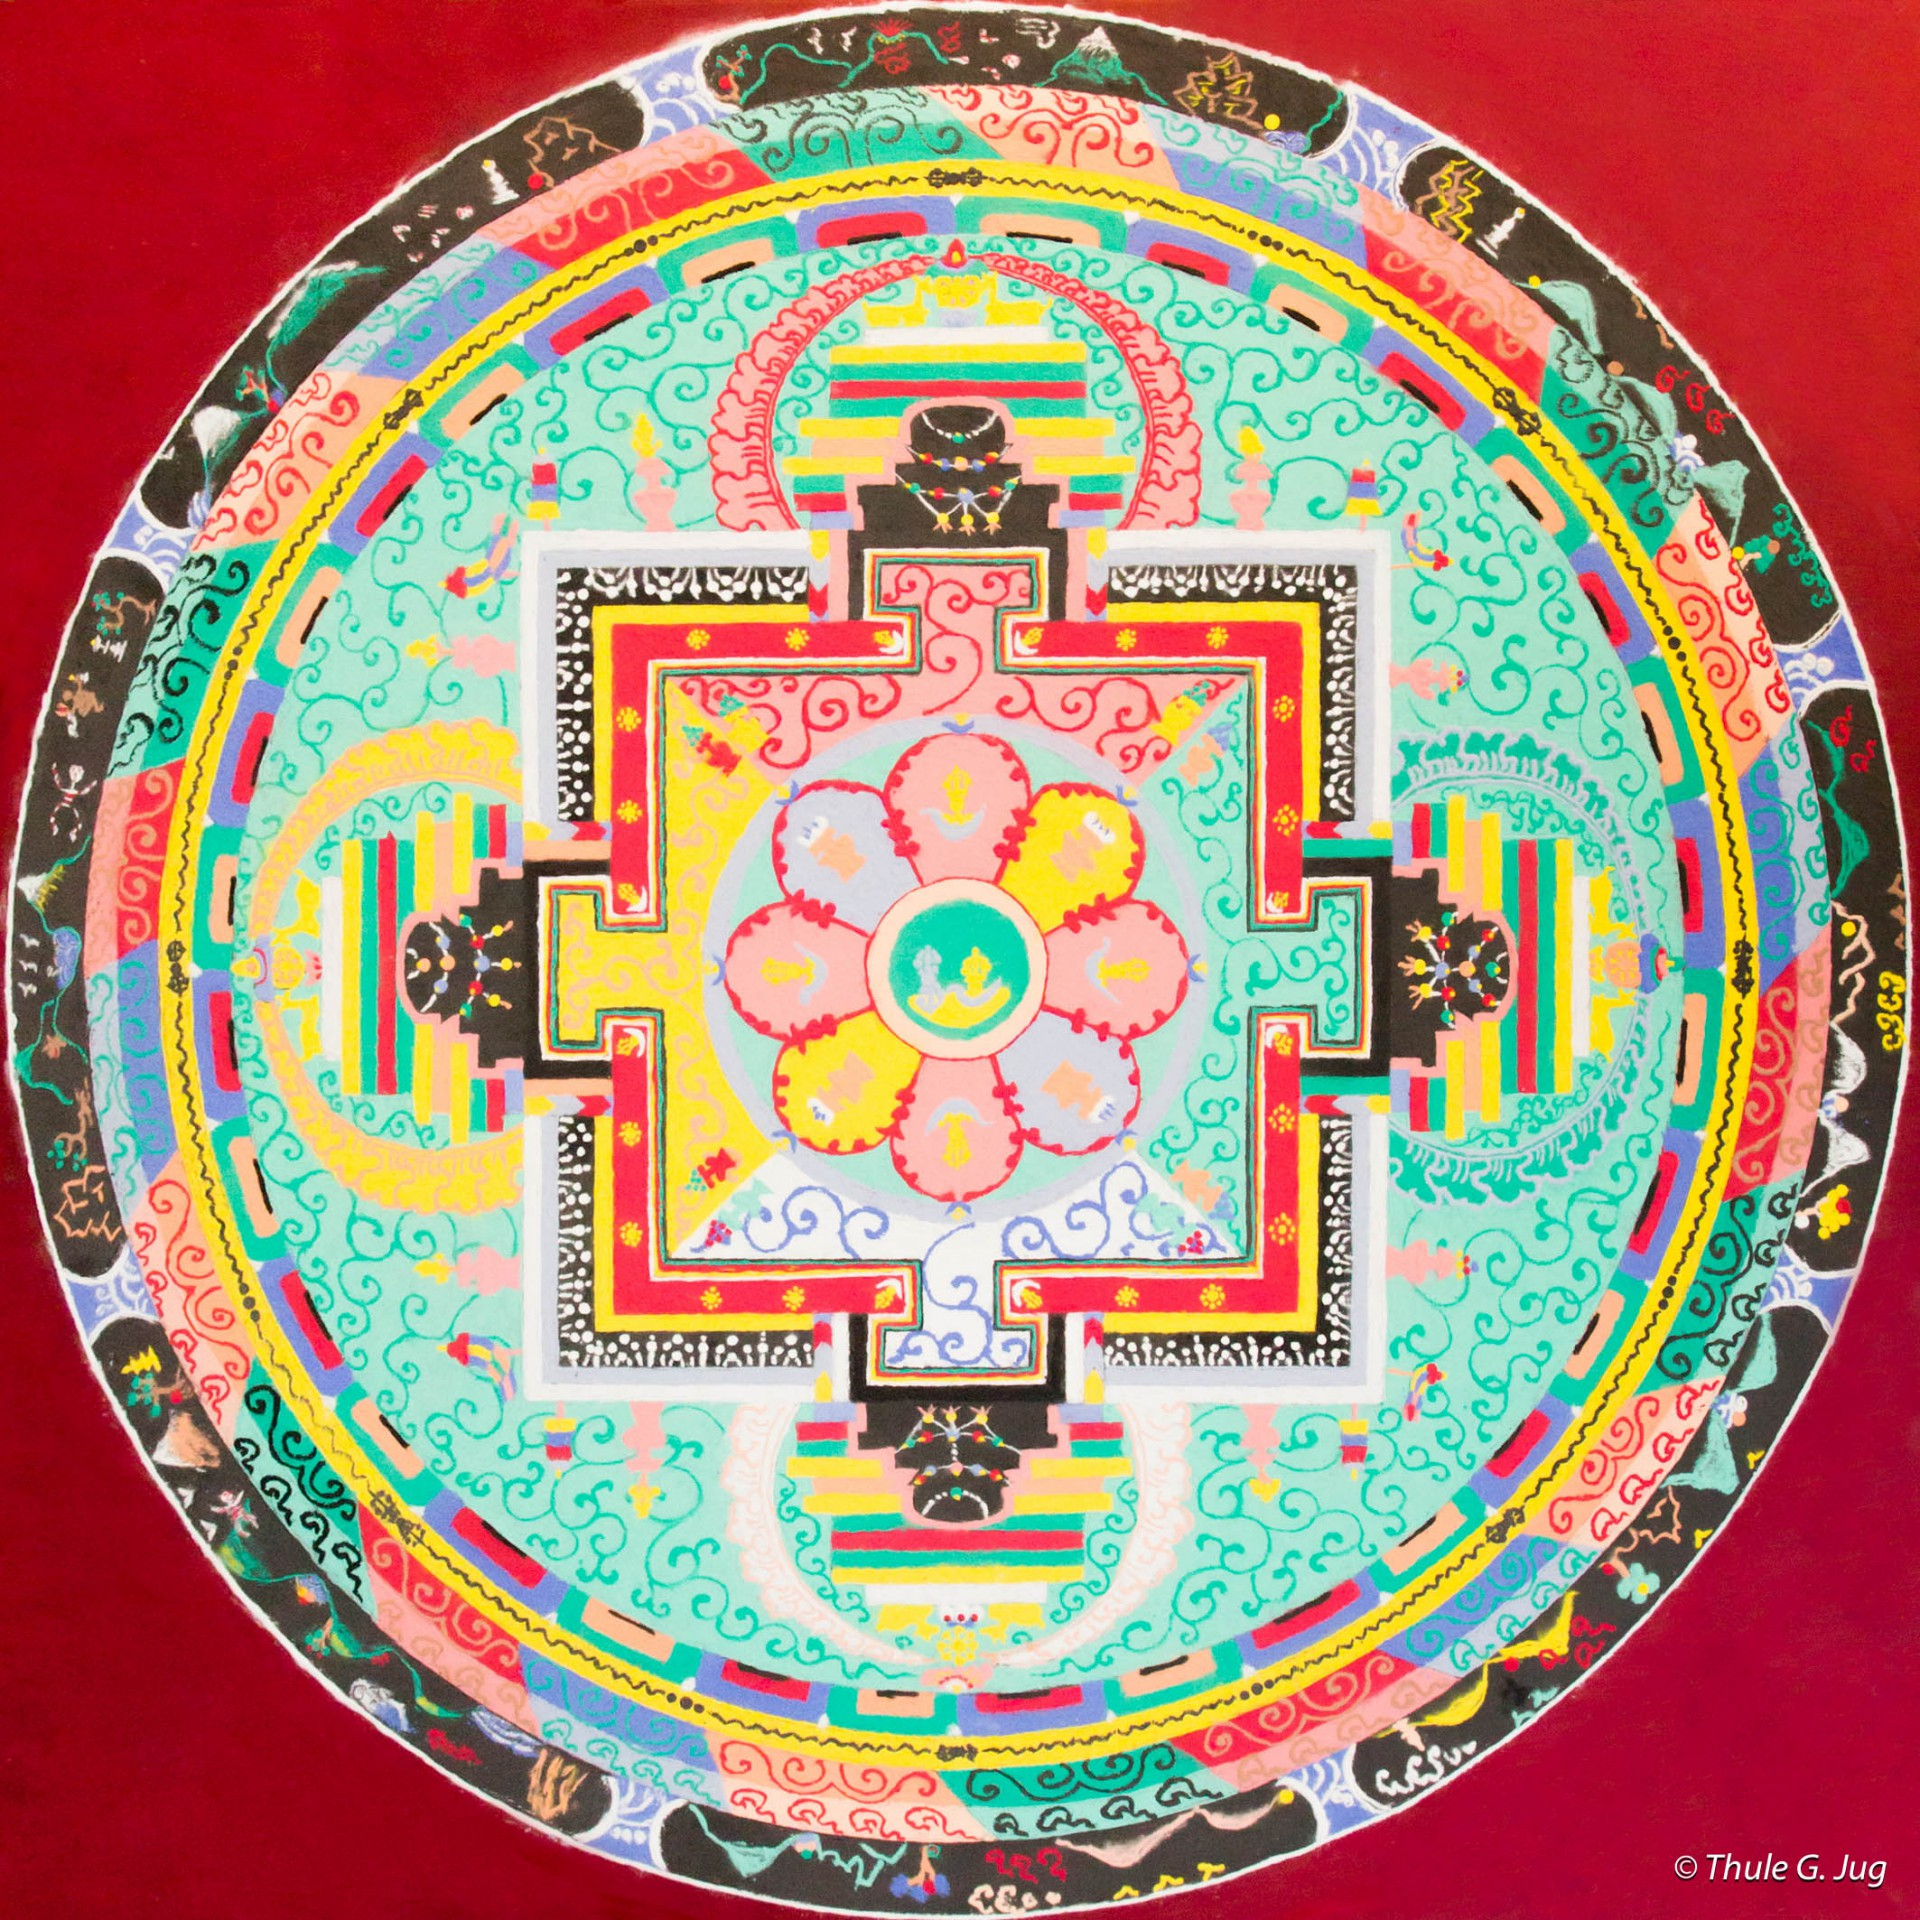 The completed sand mandala of Chakrasamvara